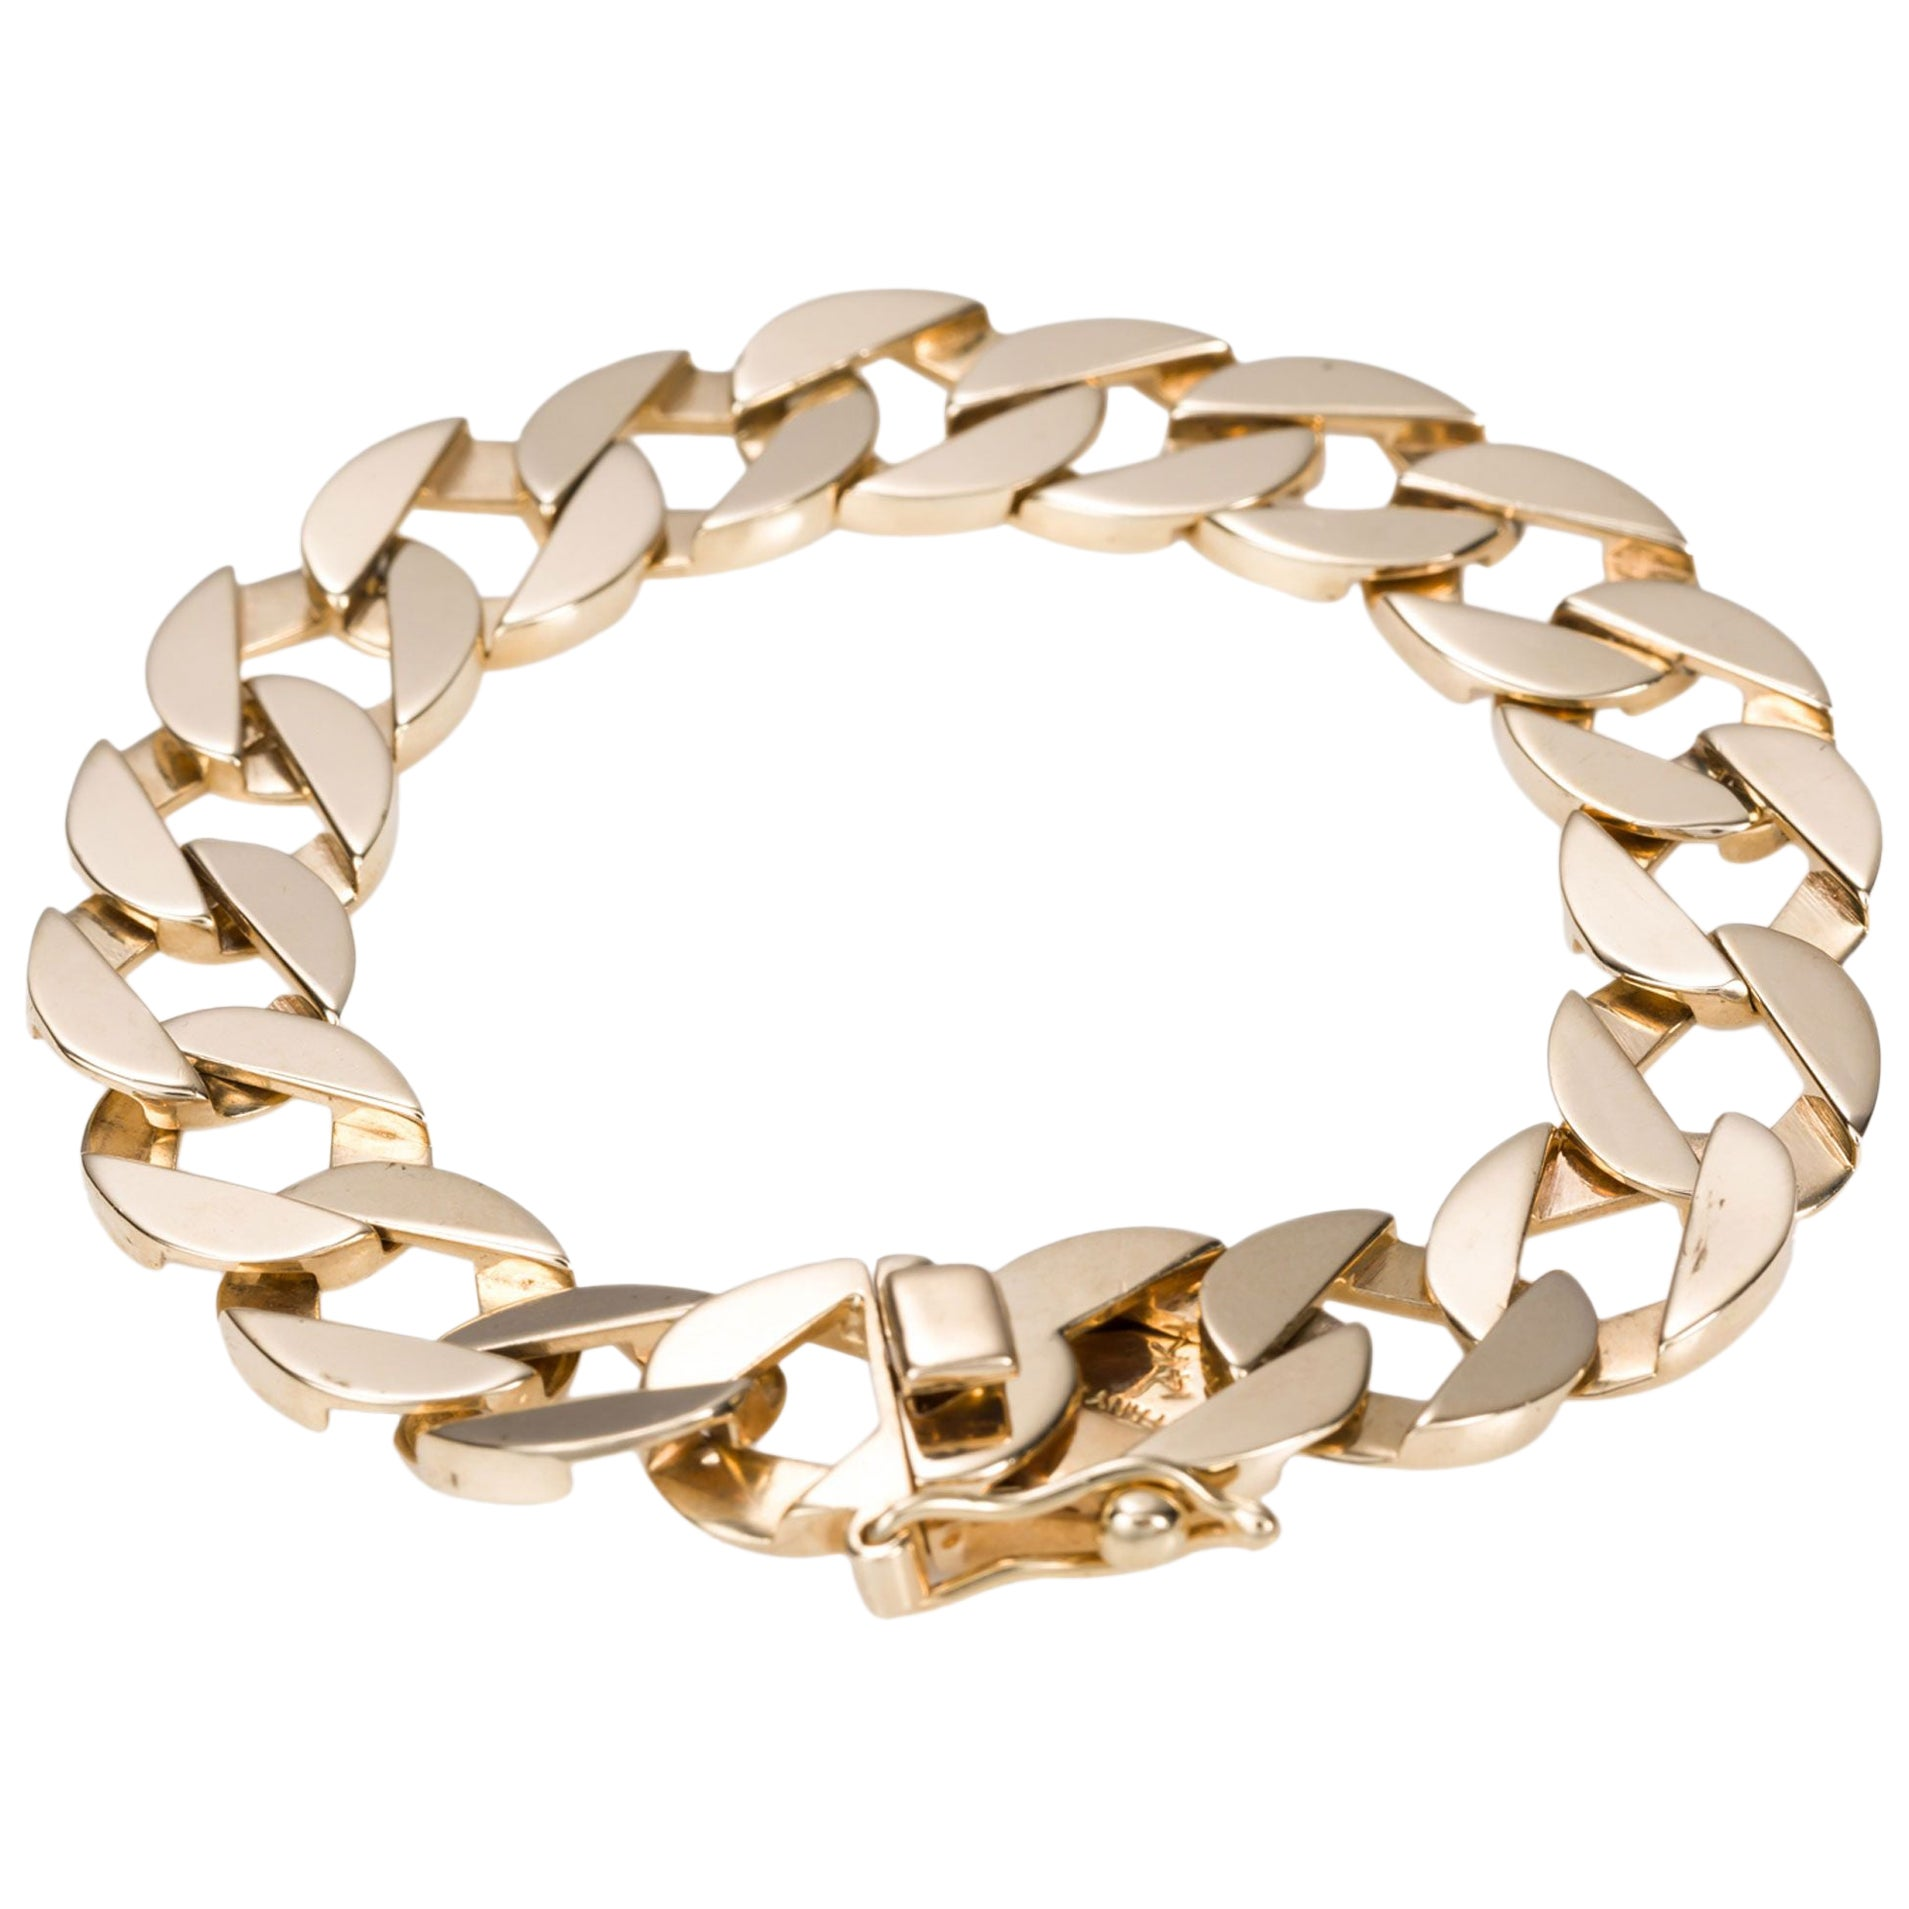 14 Karat Yellow Gold Tiffany & Co. Unisex Flat Link Bracelet